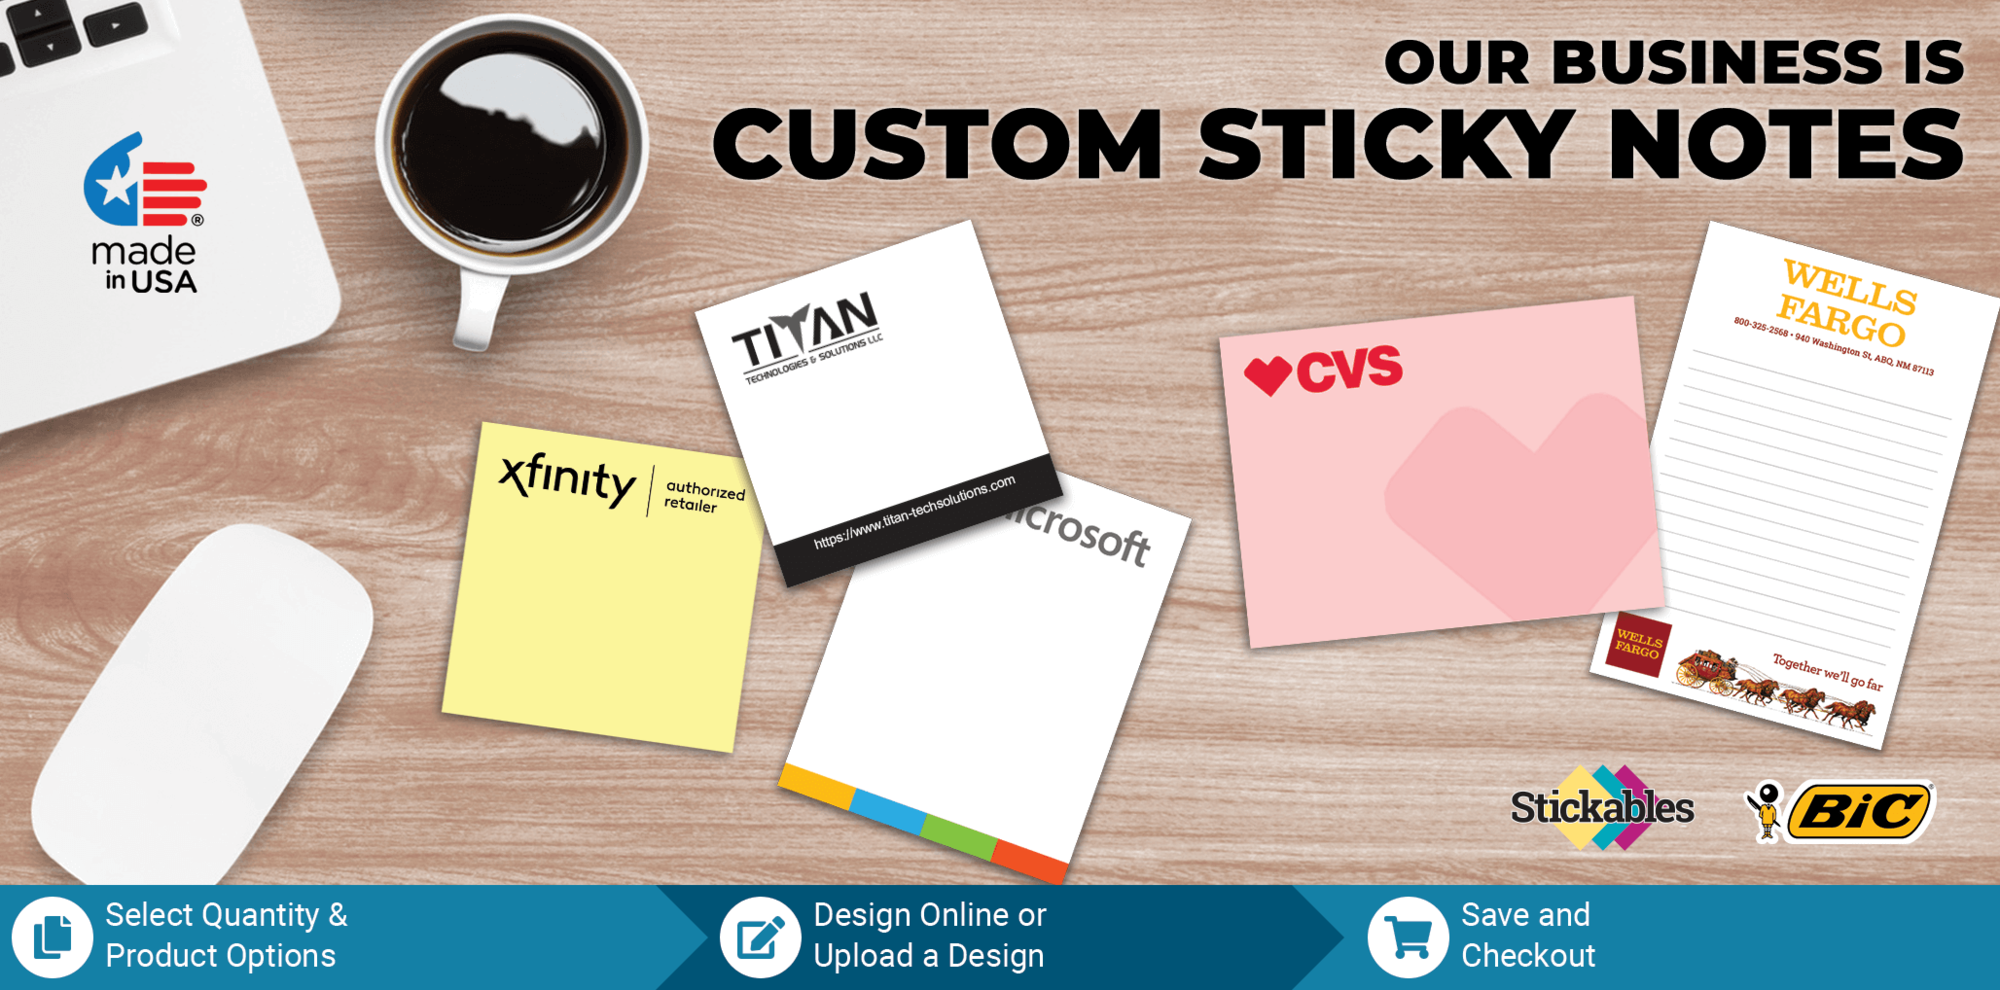 https://printpps.com/images/products_gallery_images/Custom-Sticky-Notes_Product-Page-Banner33.png